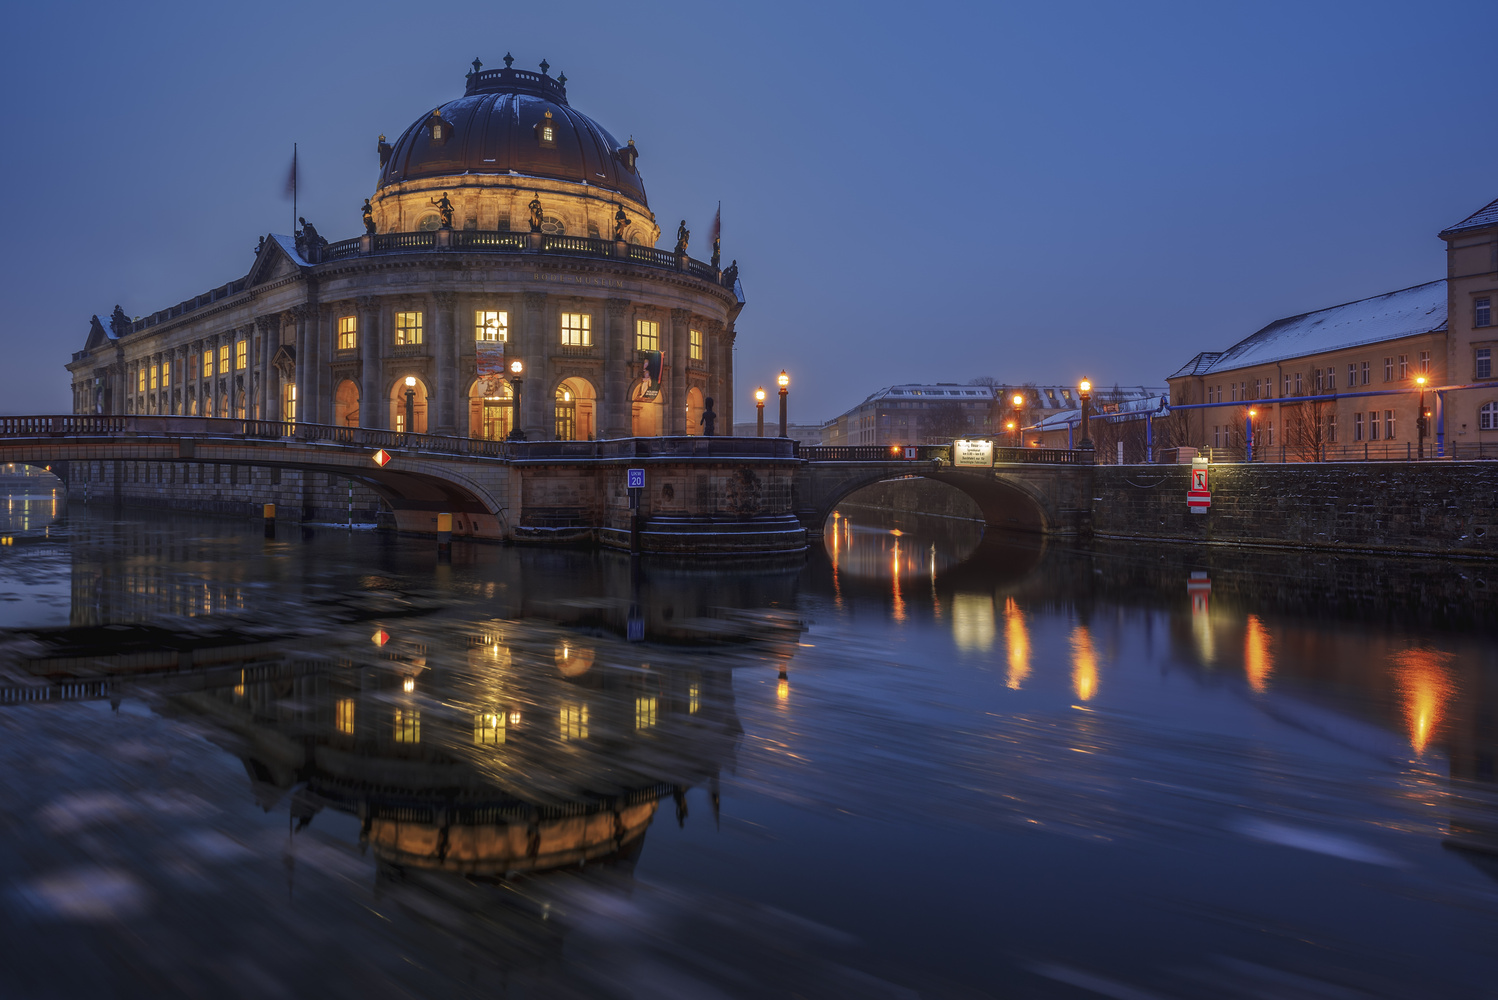 Bode-Museum - Blue Hour by Bruce Girault